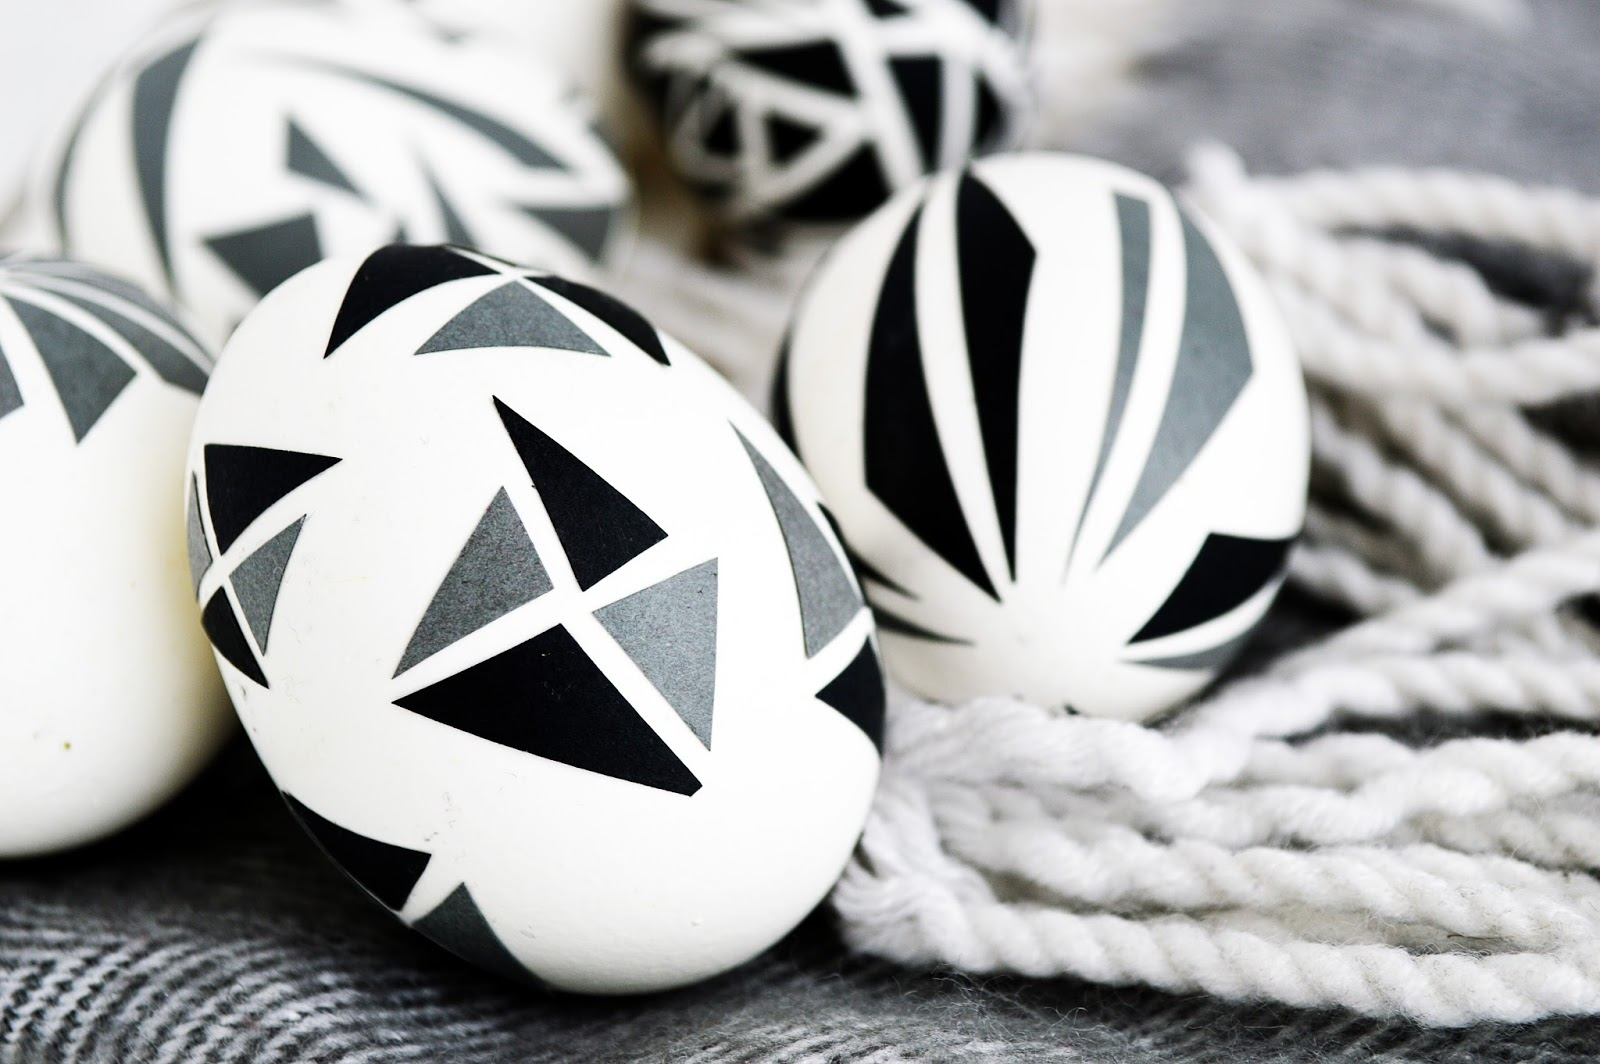 DIY Geometric Triangle Easter Eggs | Motte's Blog